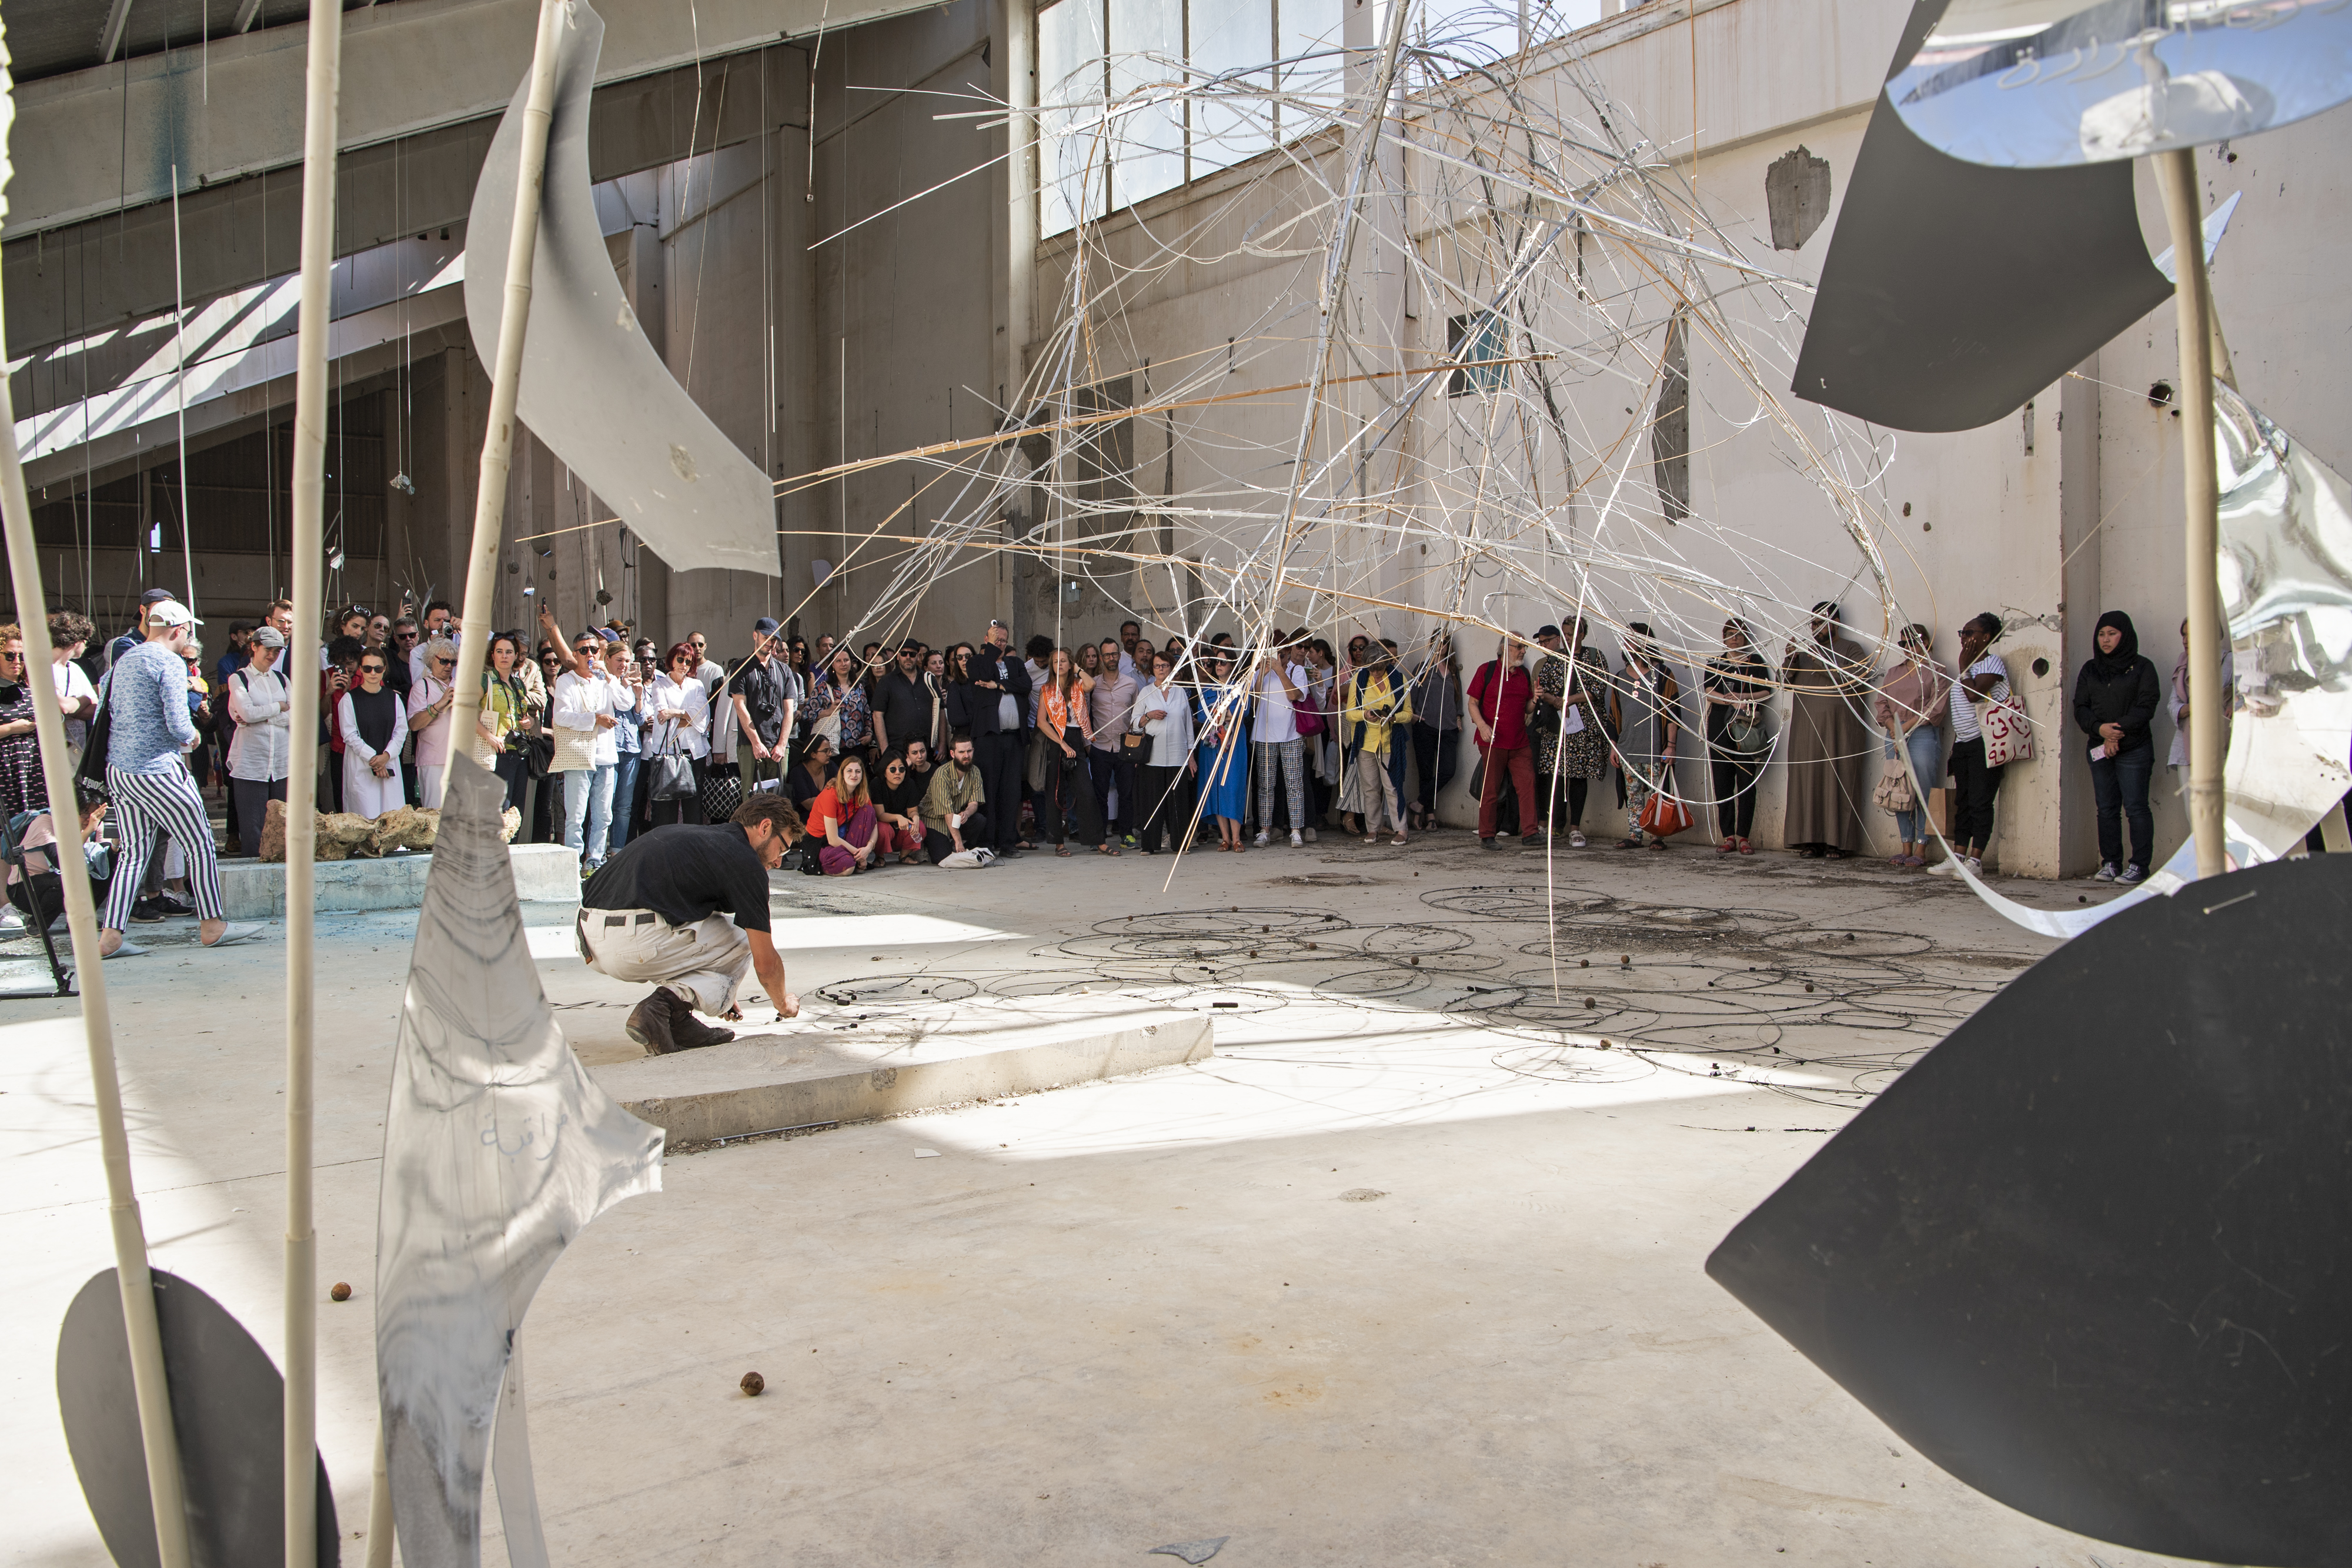 Nikolaus Gansterer, <br> Sympoiesis Observatory performance, March 8, 2019, Kalba Ice Factory. Photo Courtesy SAF